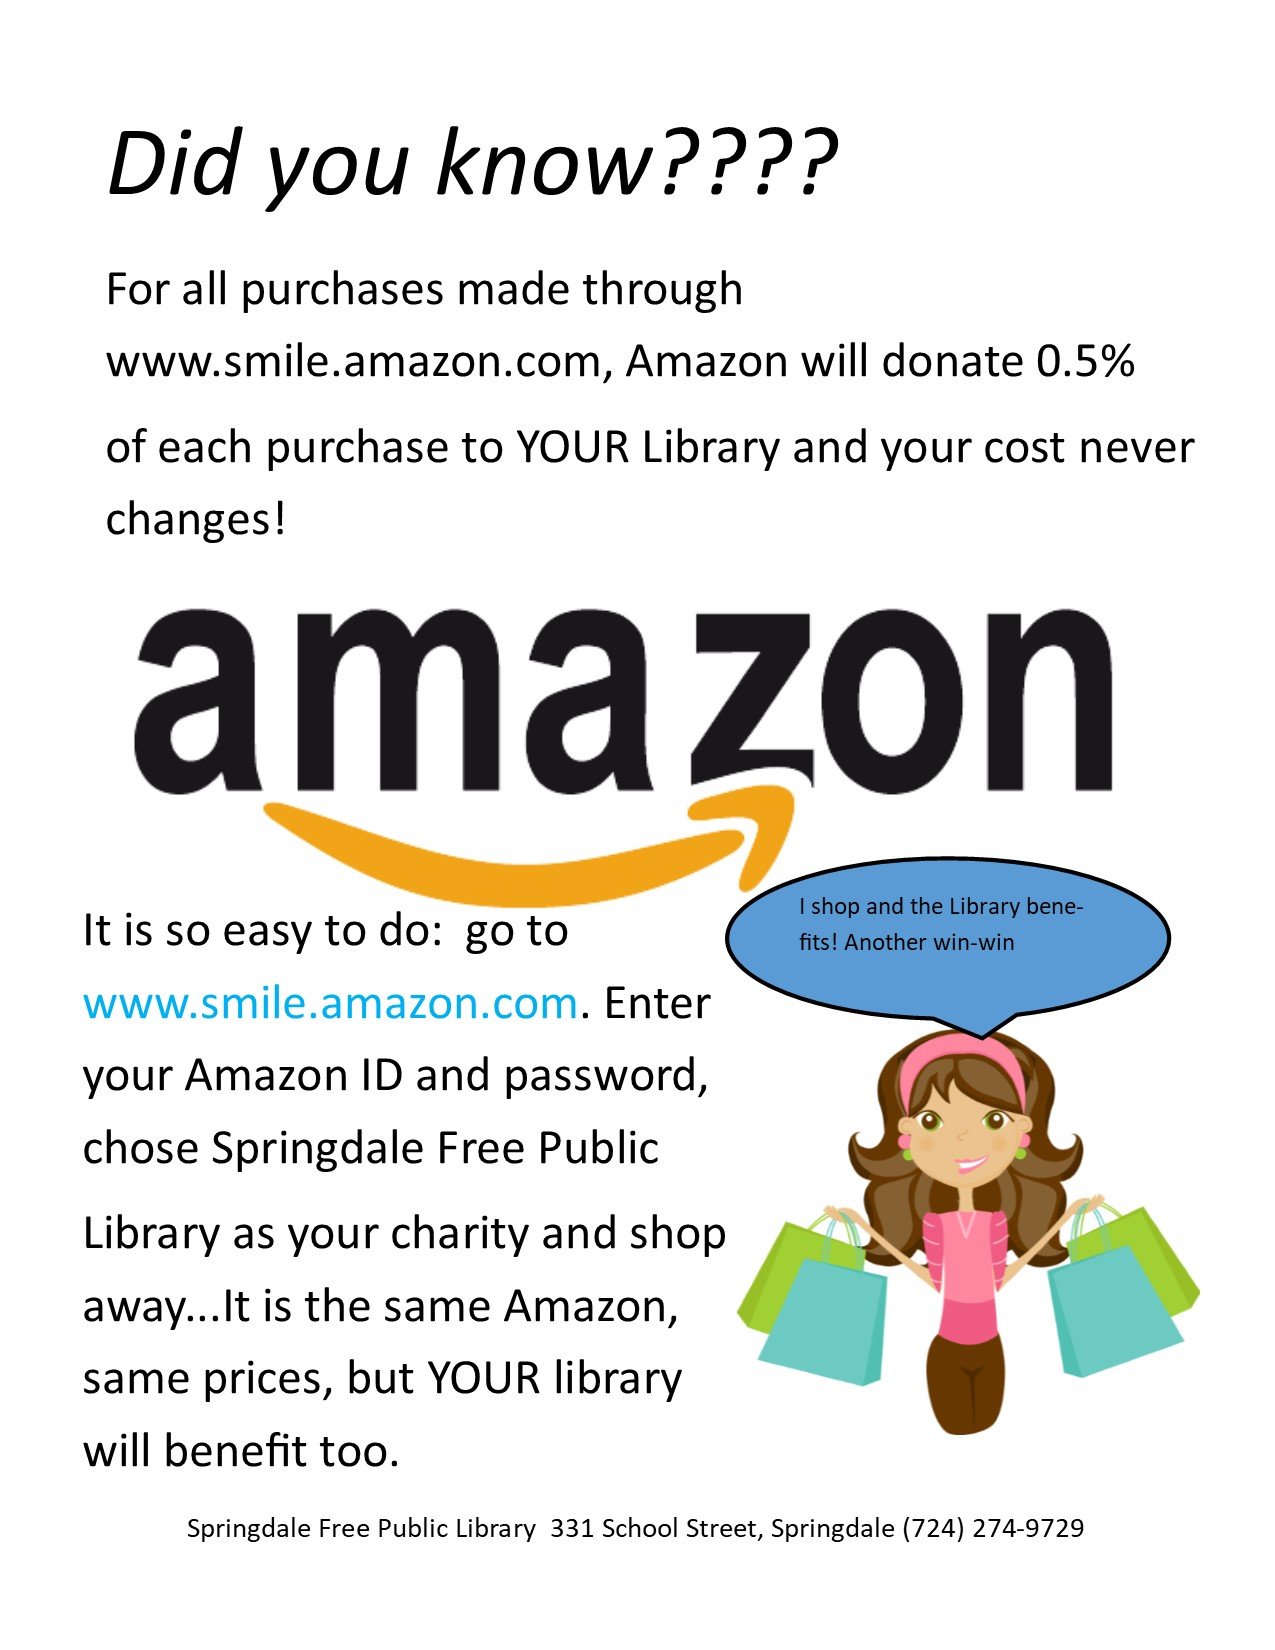 An Easy Way to Support YOUR Library